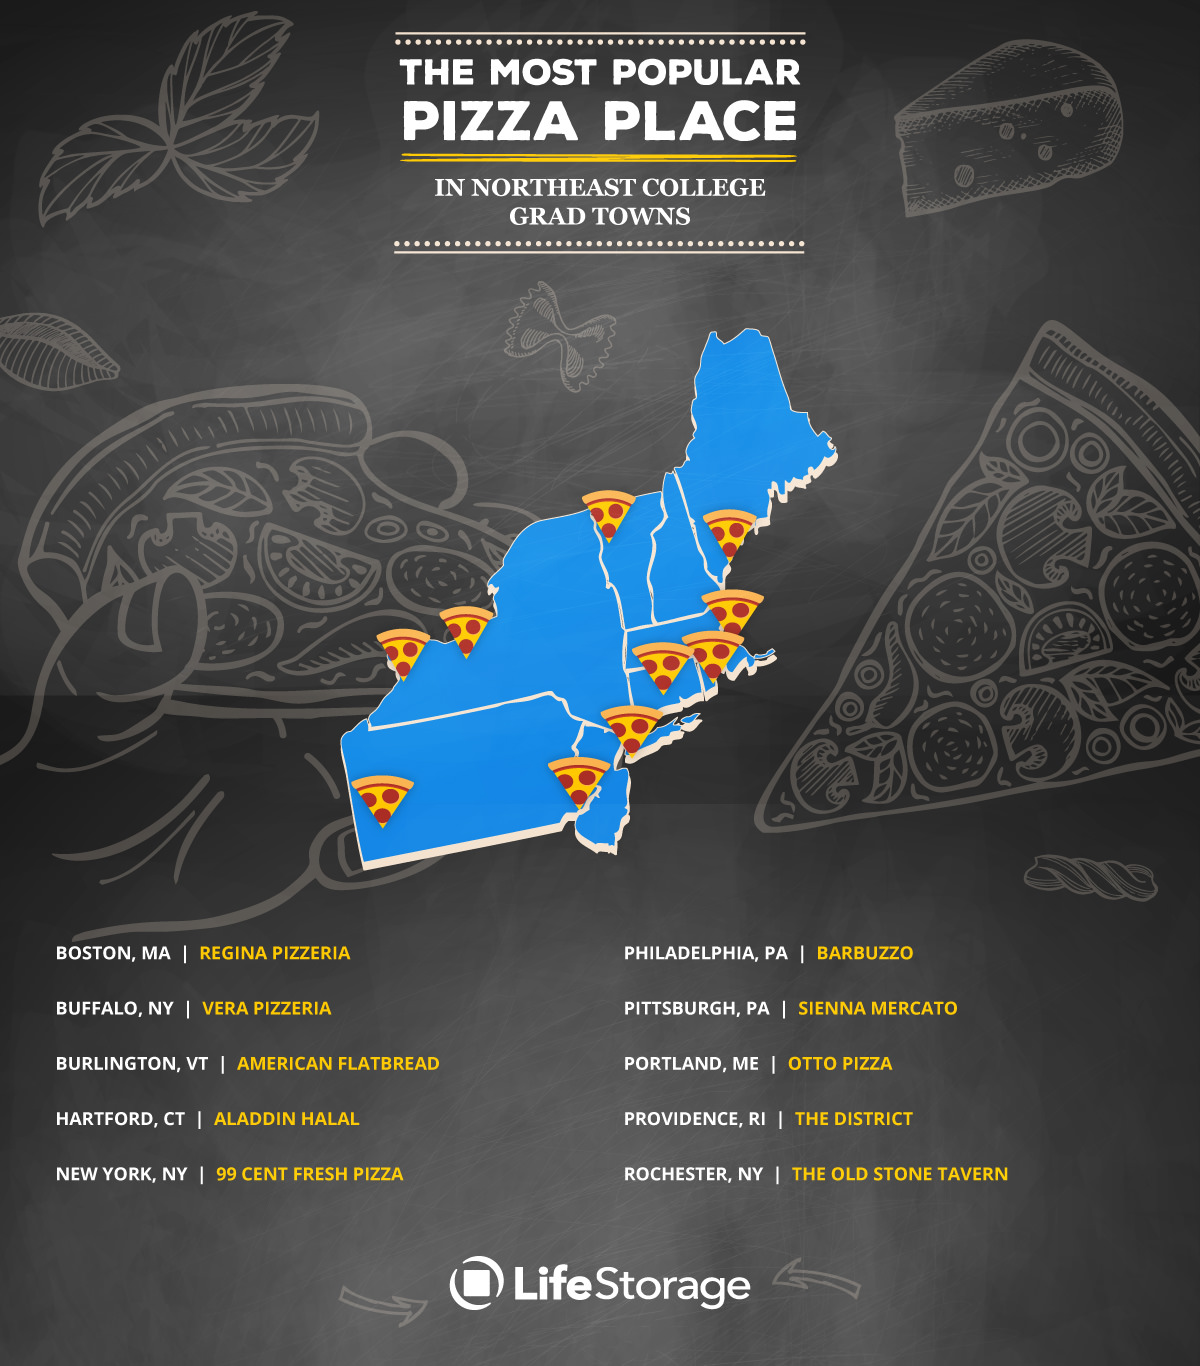 College Town Pizza: The Most Popular Pizza Place in Northeast College Grad Towns